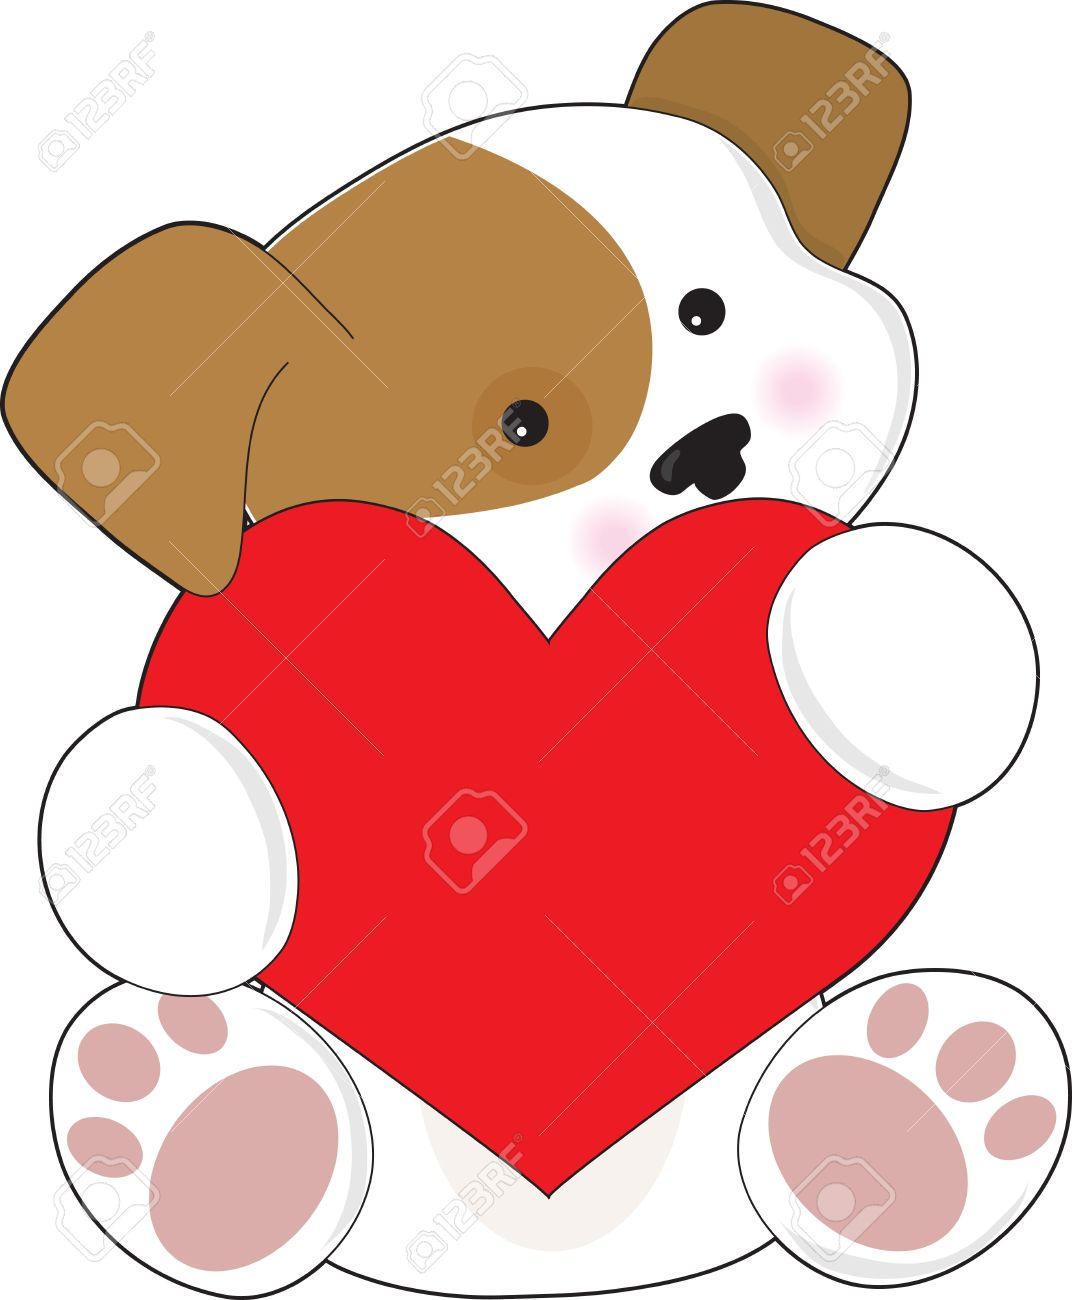 7,481 Puppy Love Stock Vector Illustration And Royalty Free Puppy.